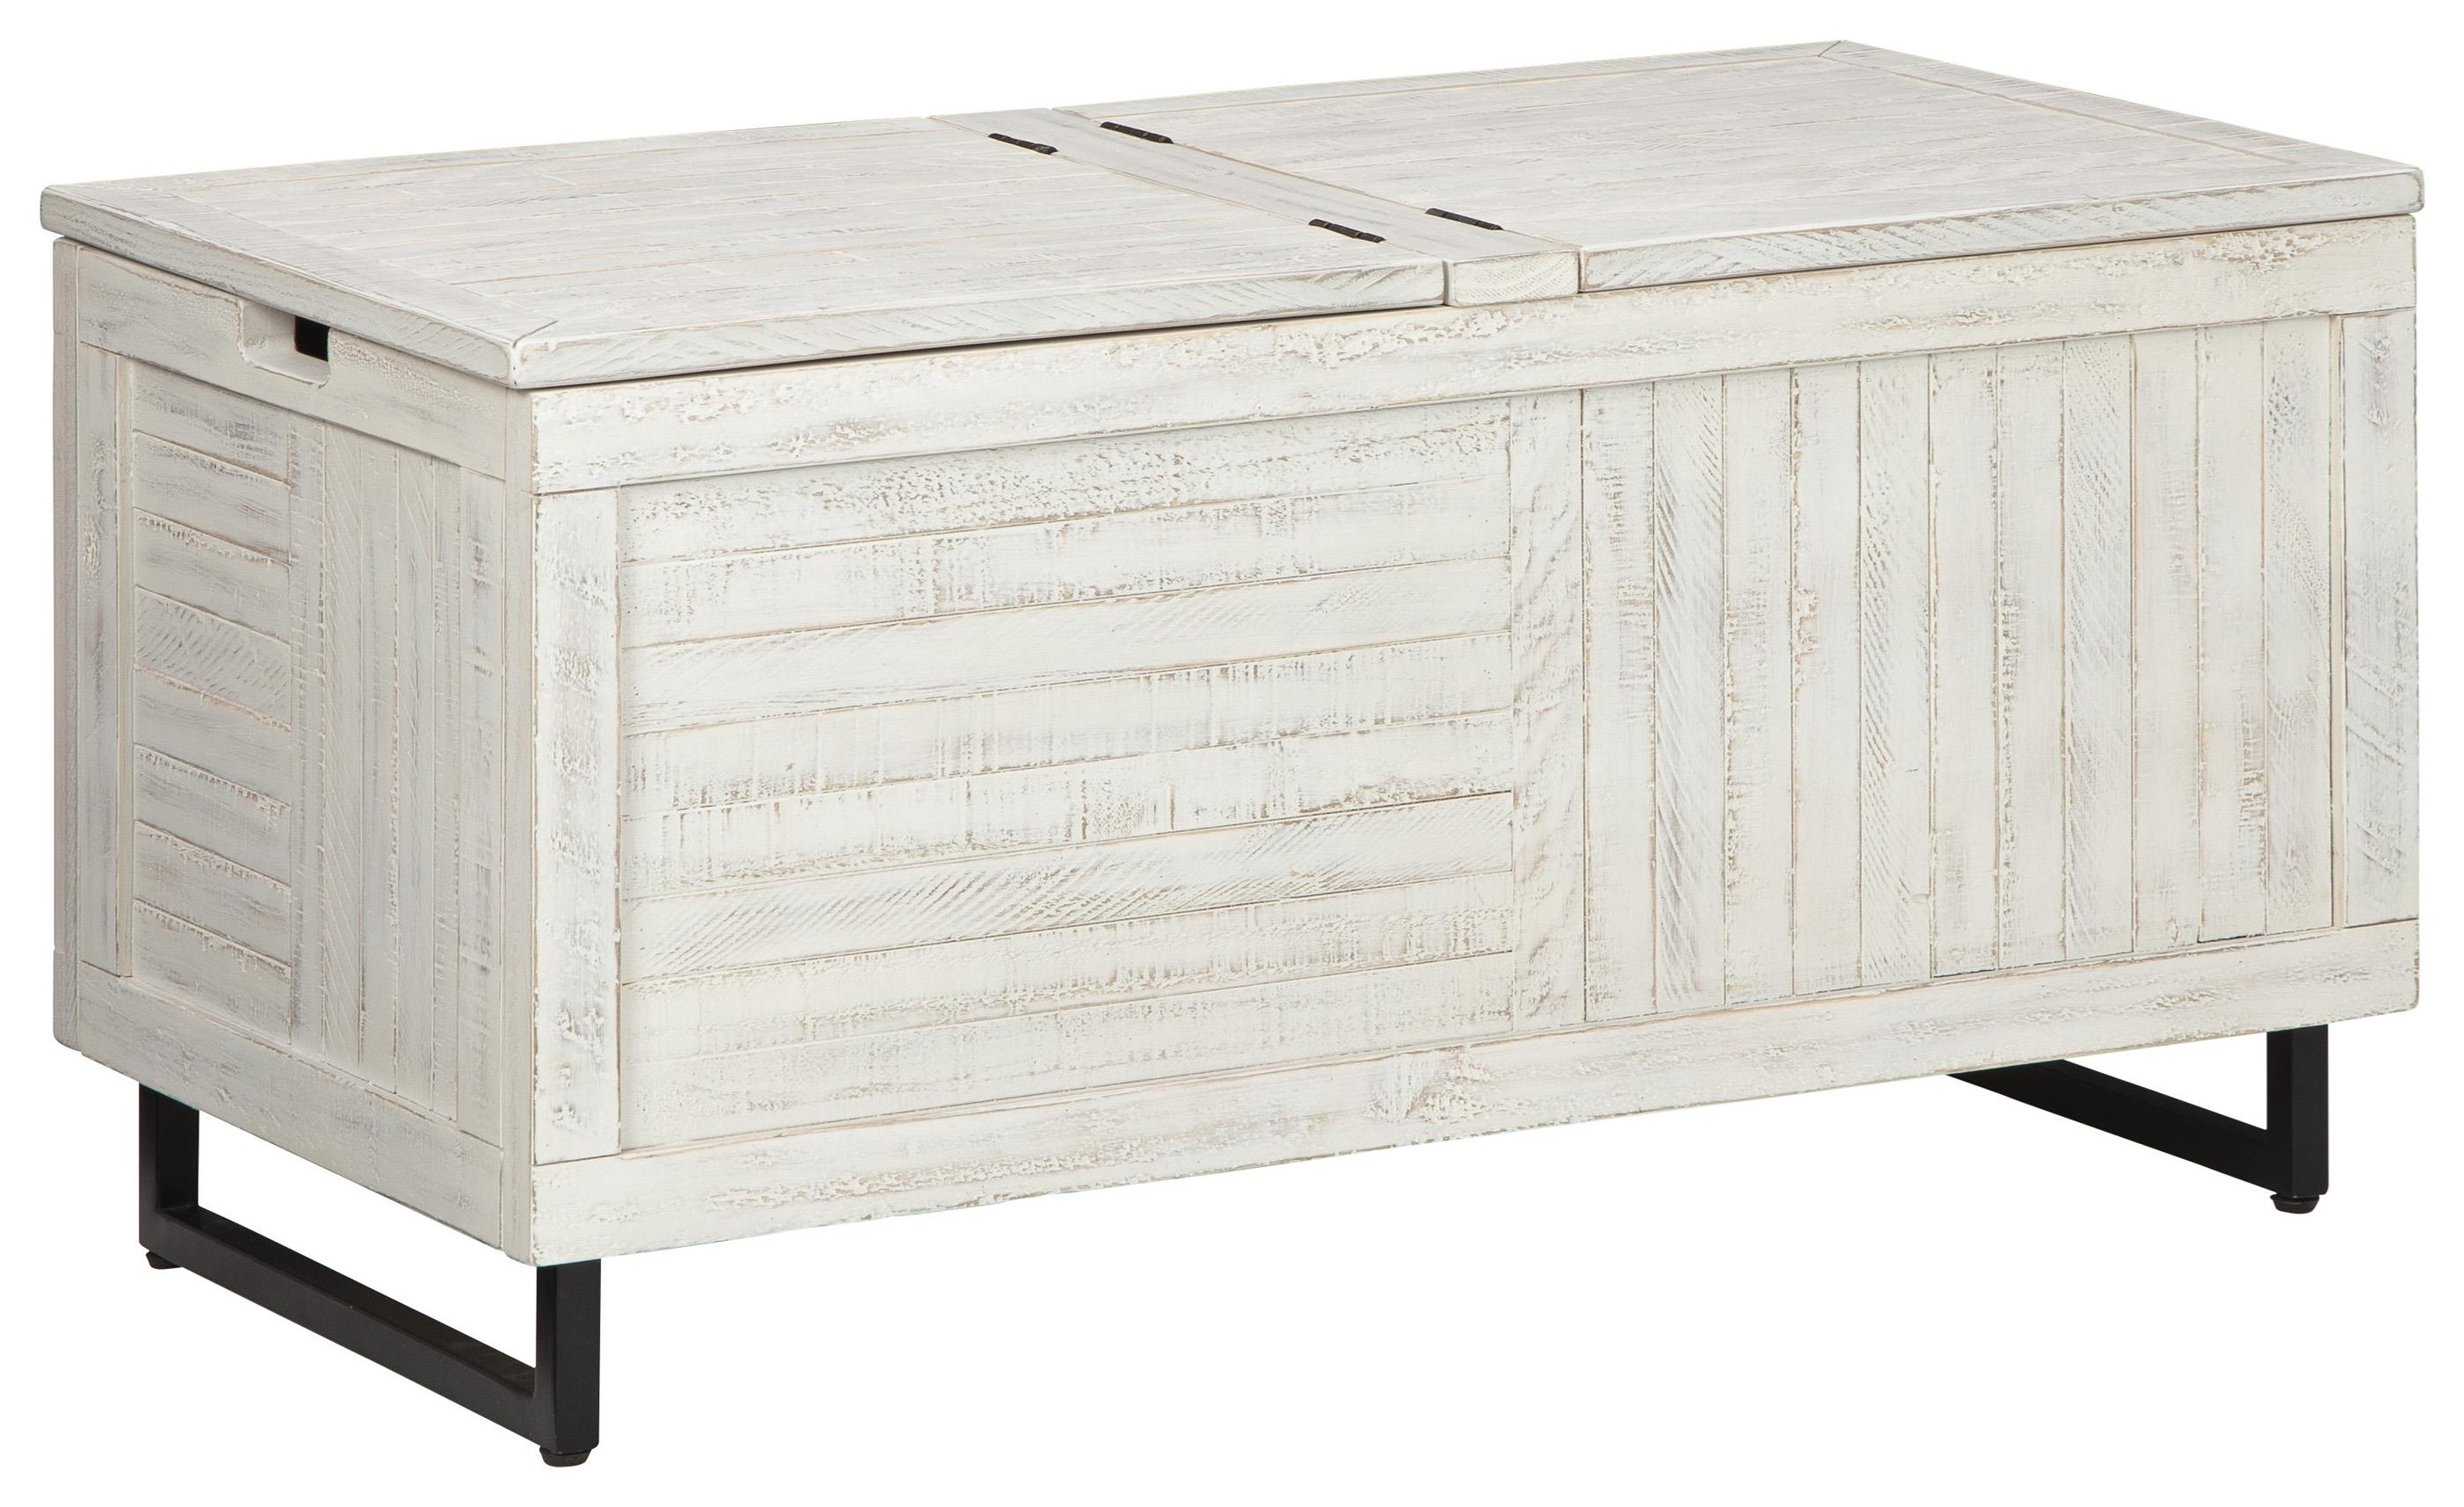 Coltport Storage Trunk by Signature Design by Ashley at Sam Levitz Outlet